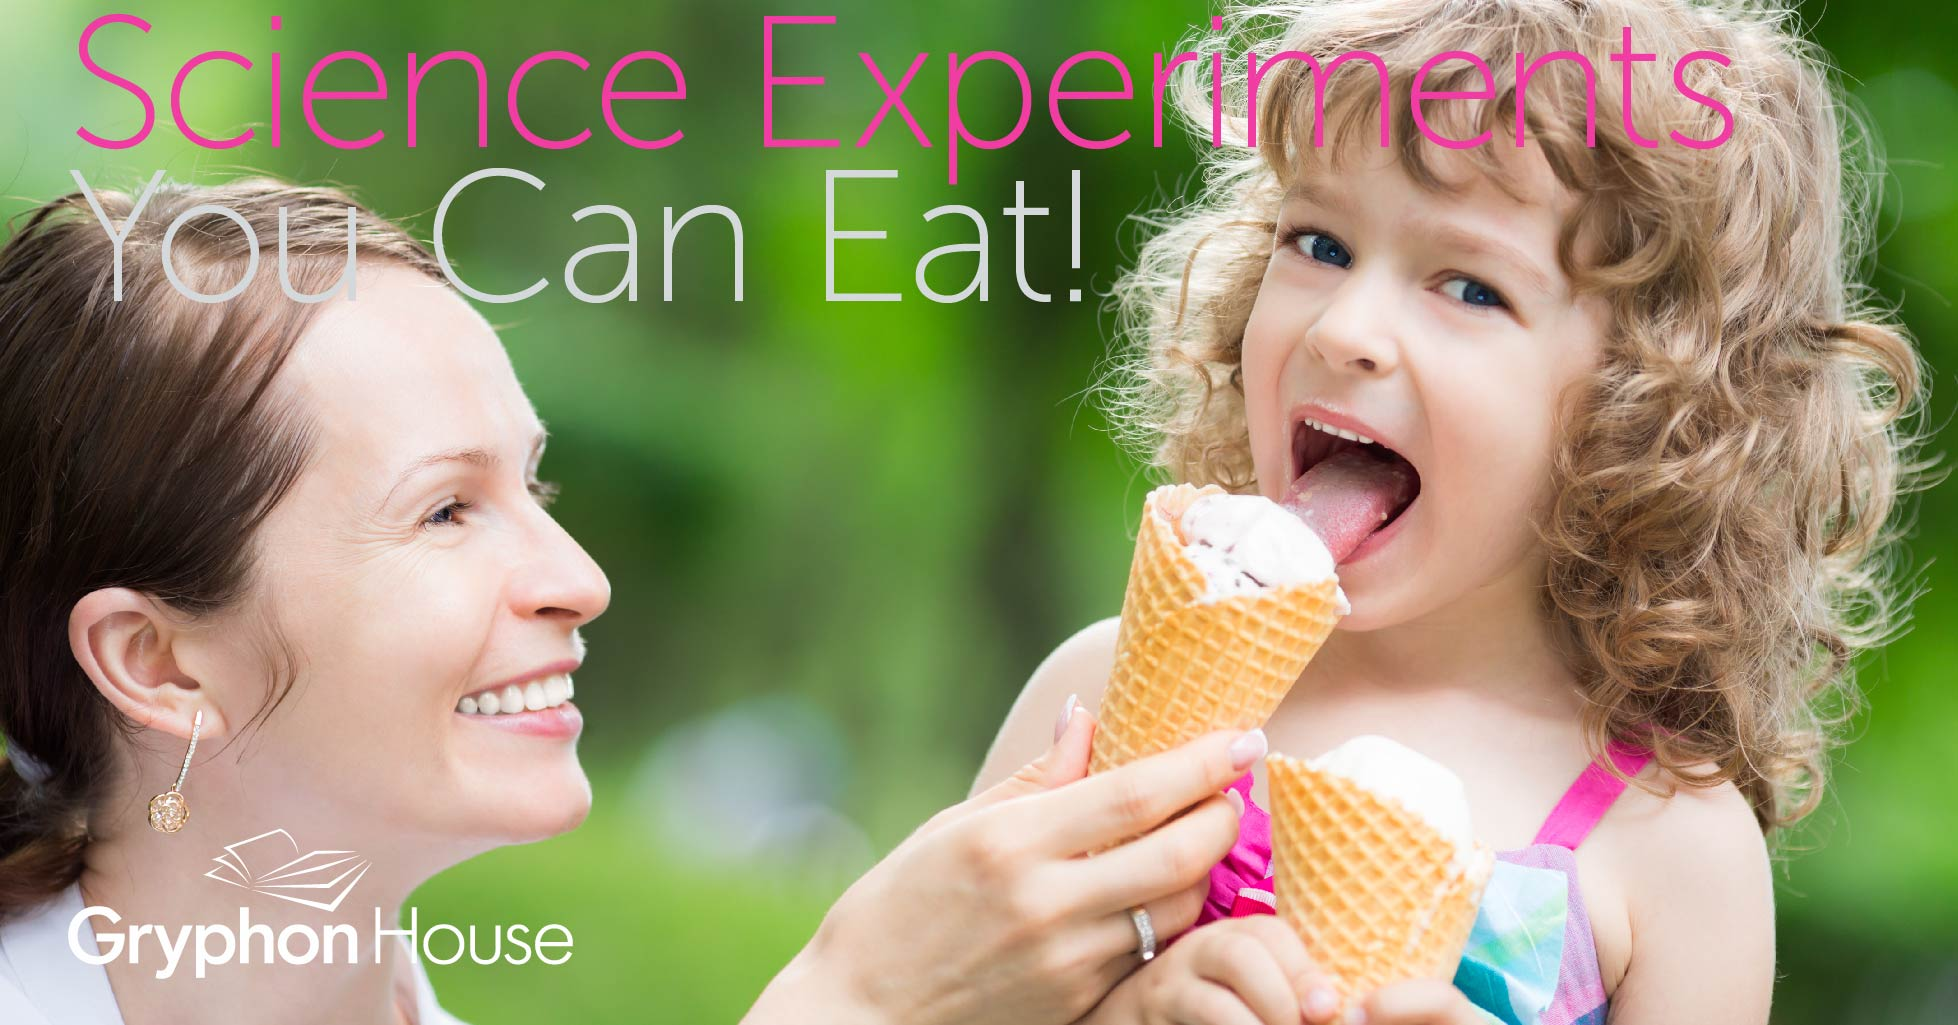 Science Experiments You Can Eat | Gryphon House